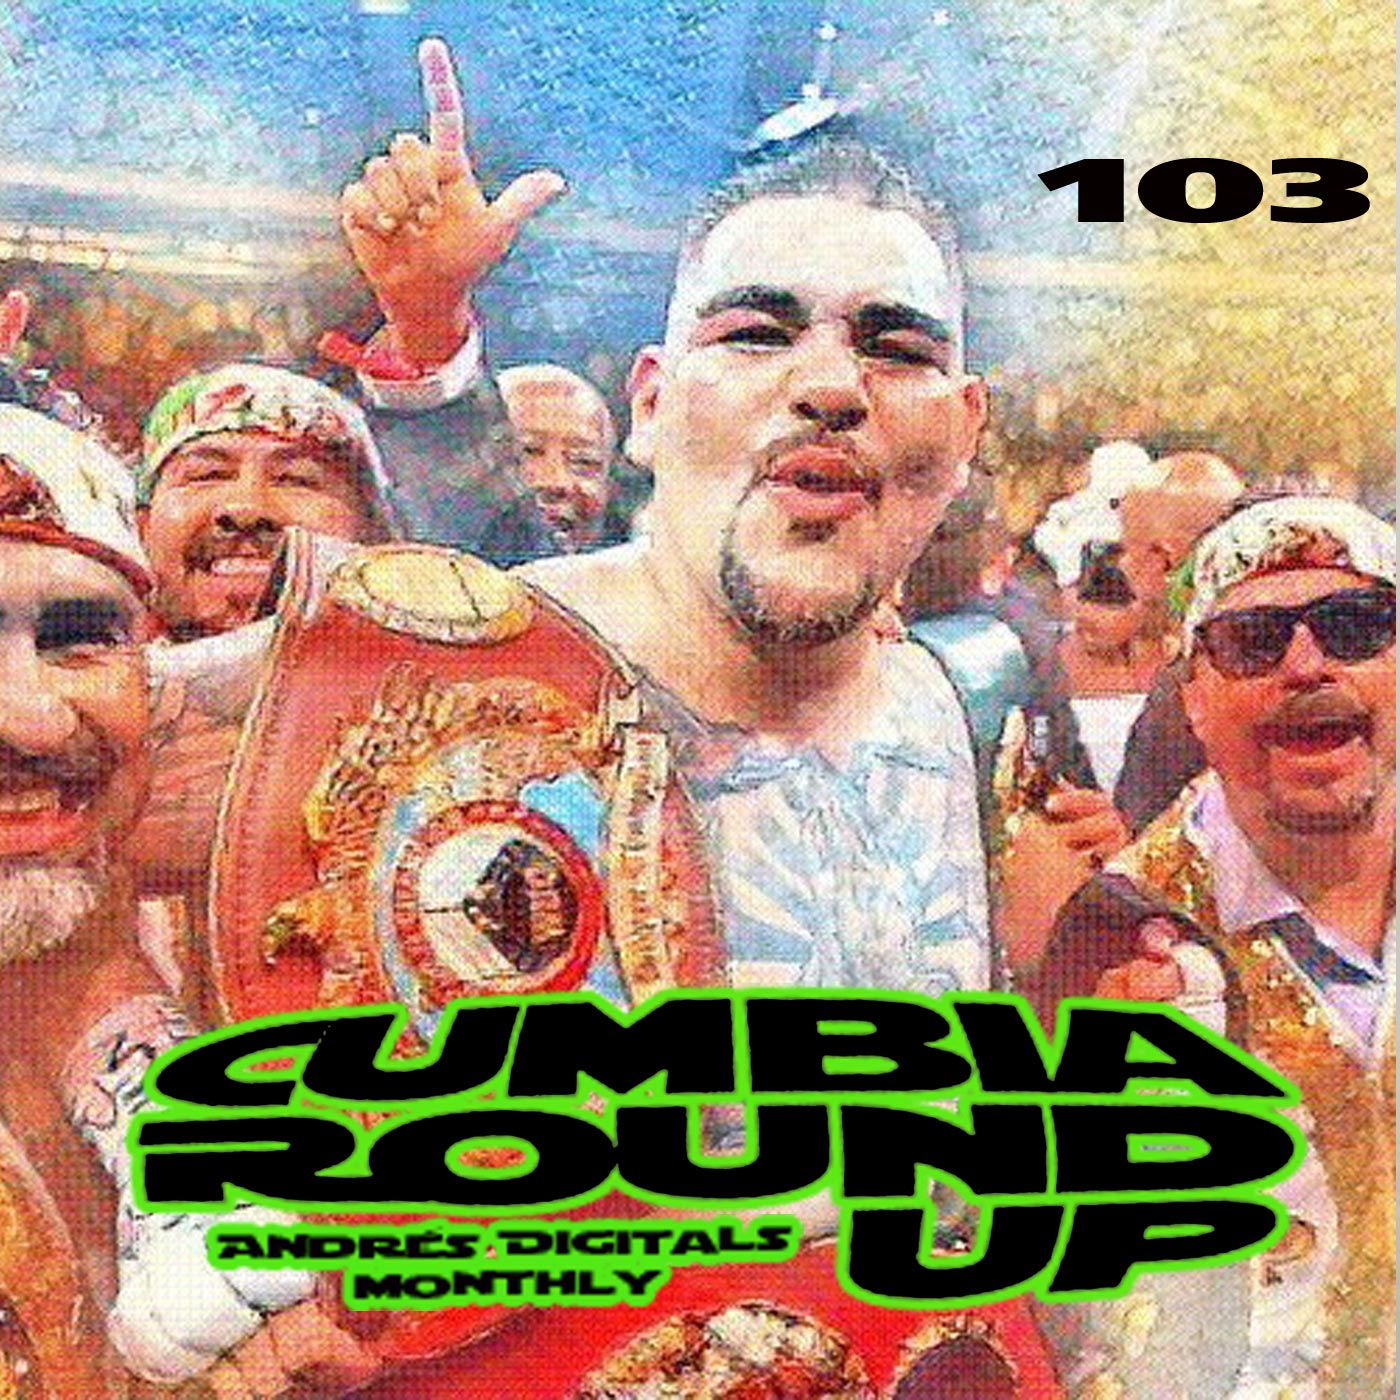 With Tunes and Remixes by Paco Mendoza, Kumbia Boruka, Kumbia Queers, Banana Sound Cartel, Caballo and many more